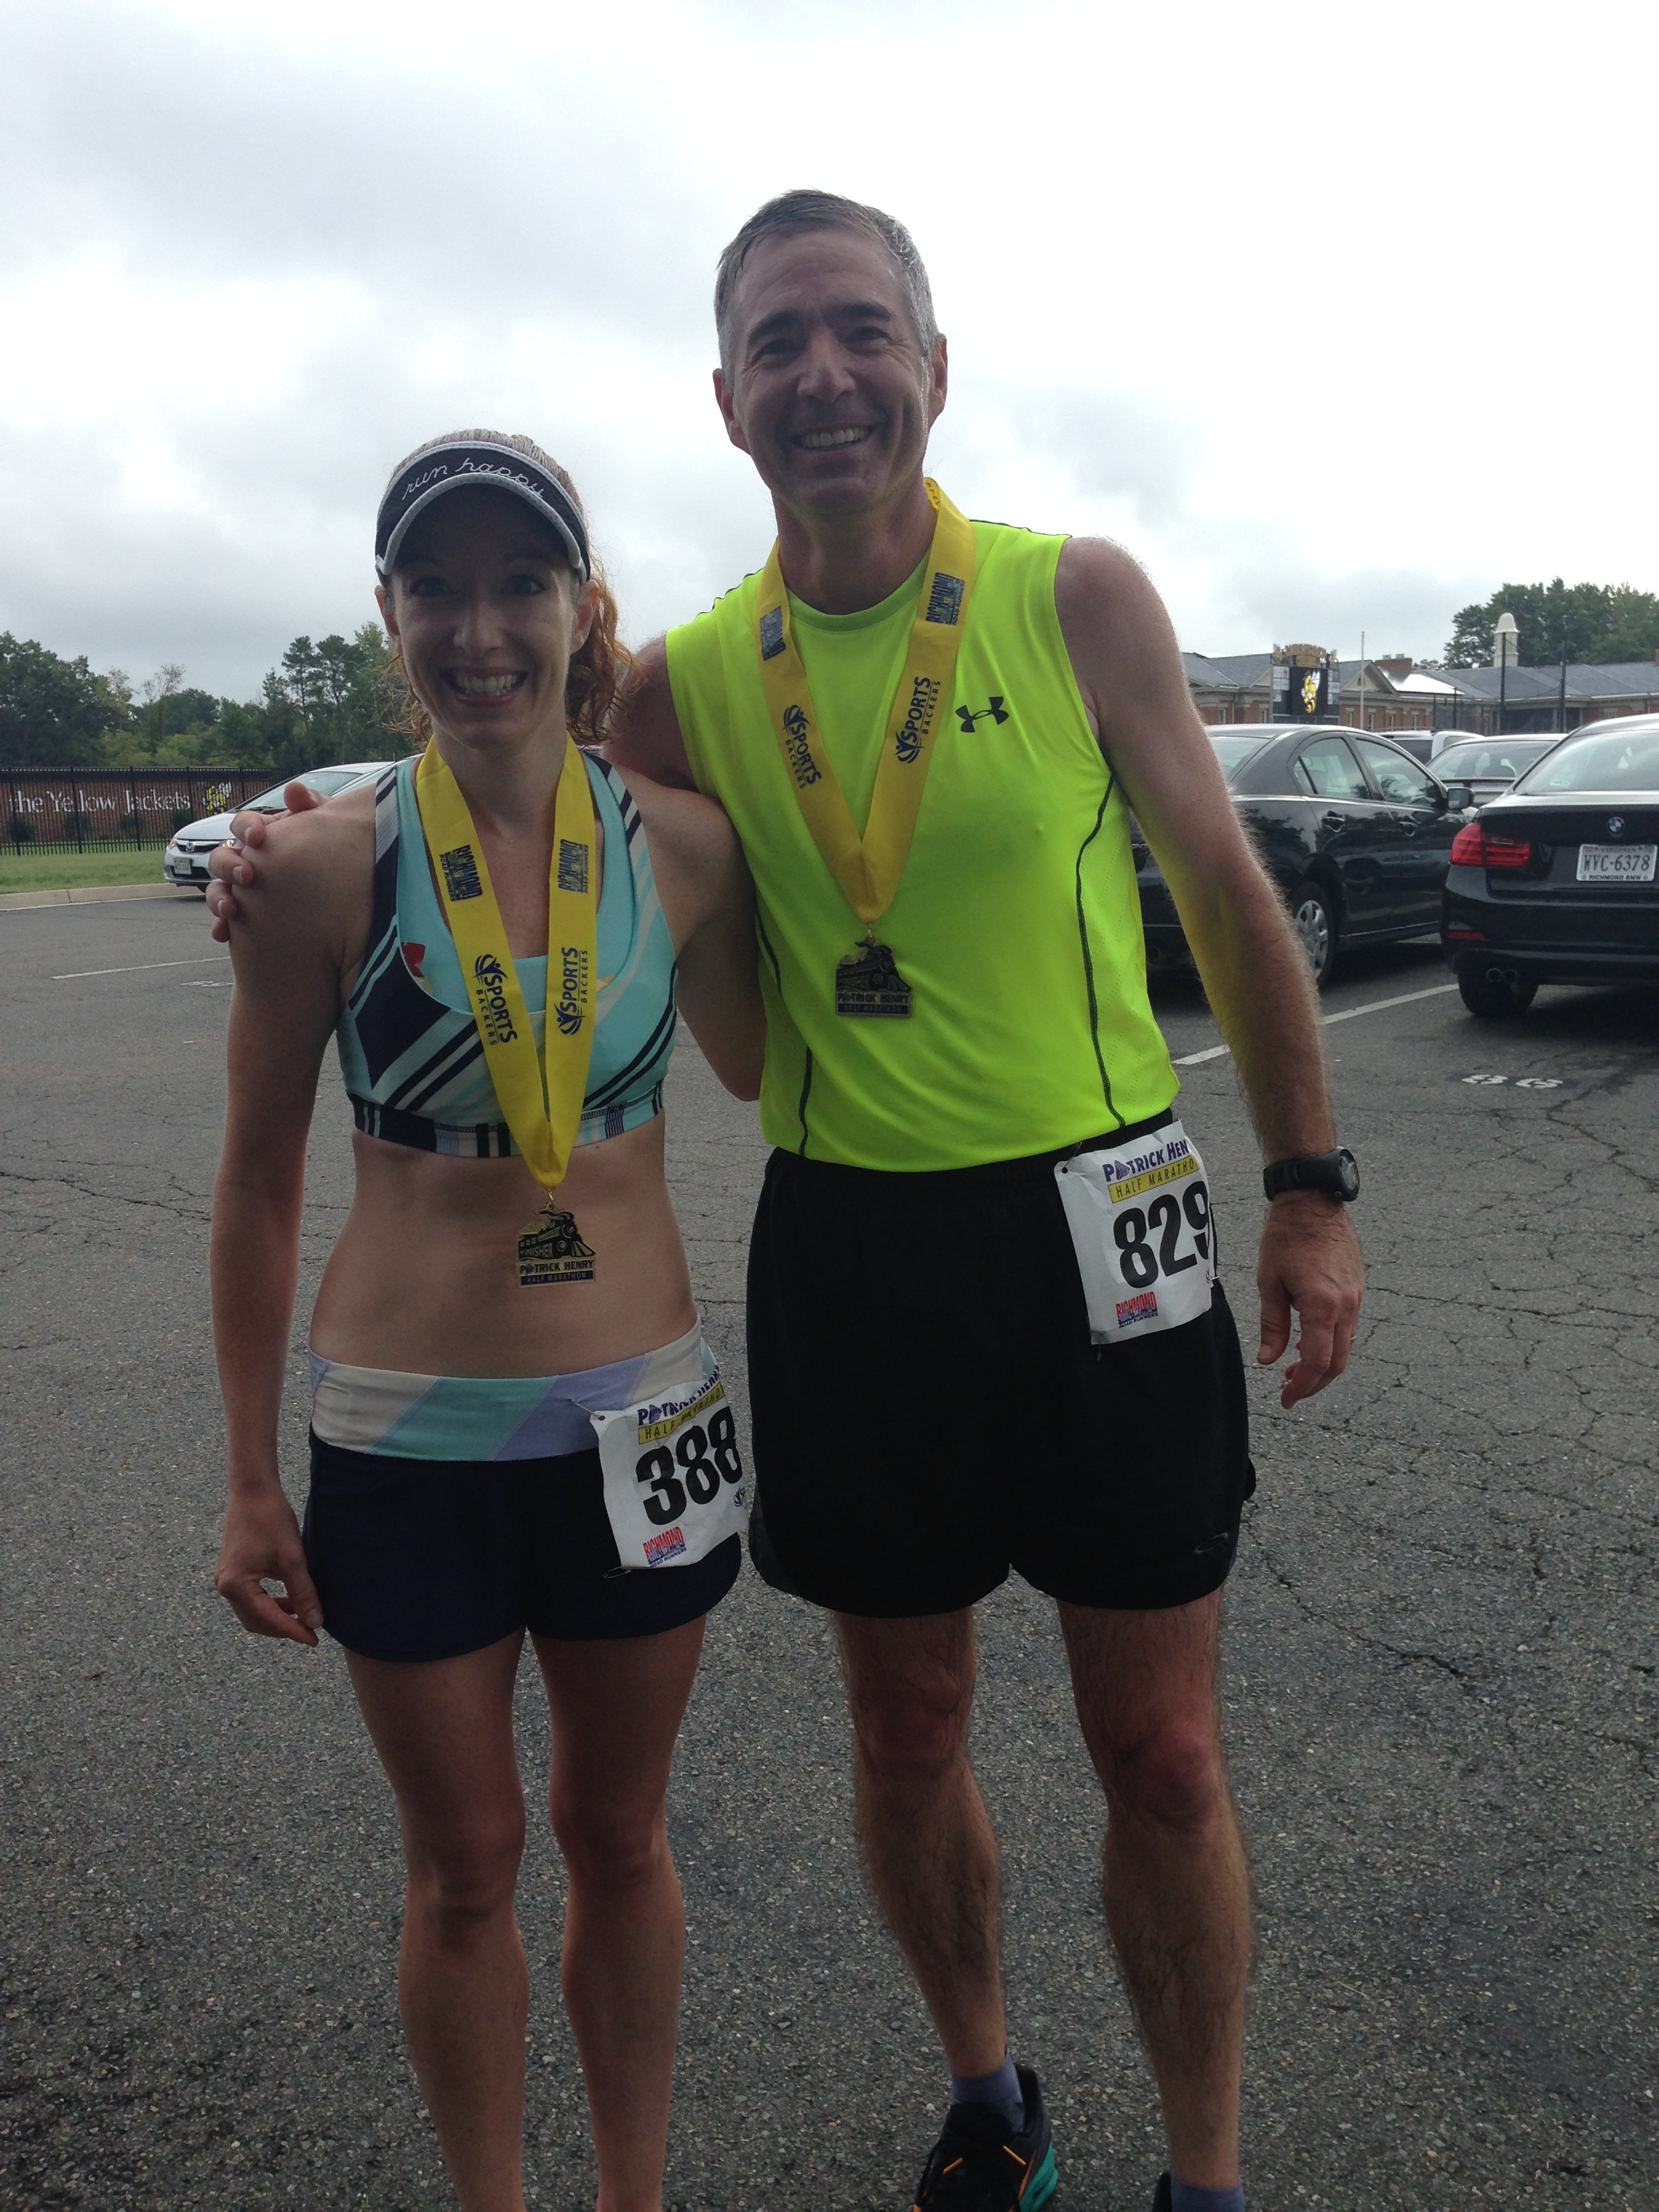 My Dad ran Patrick Henry too!  Still smiling after my disaster of a race!